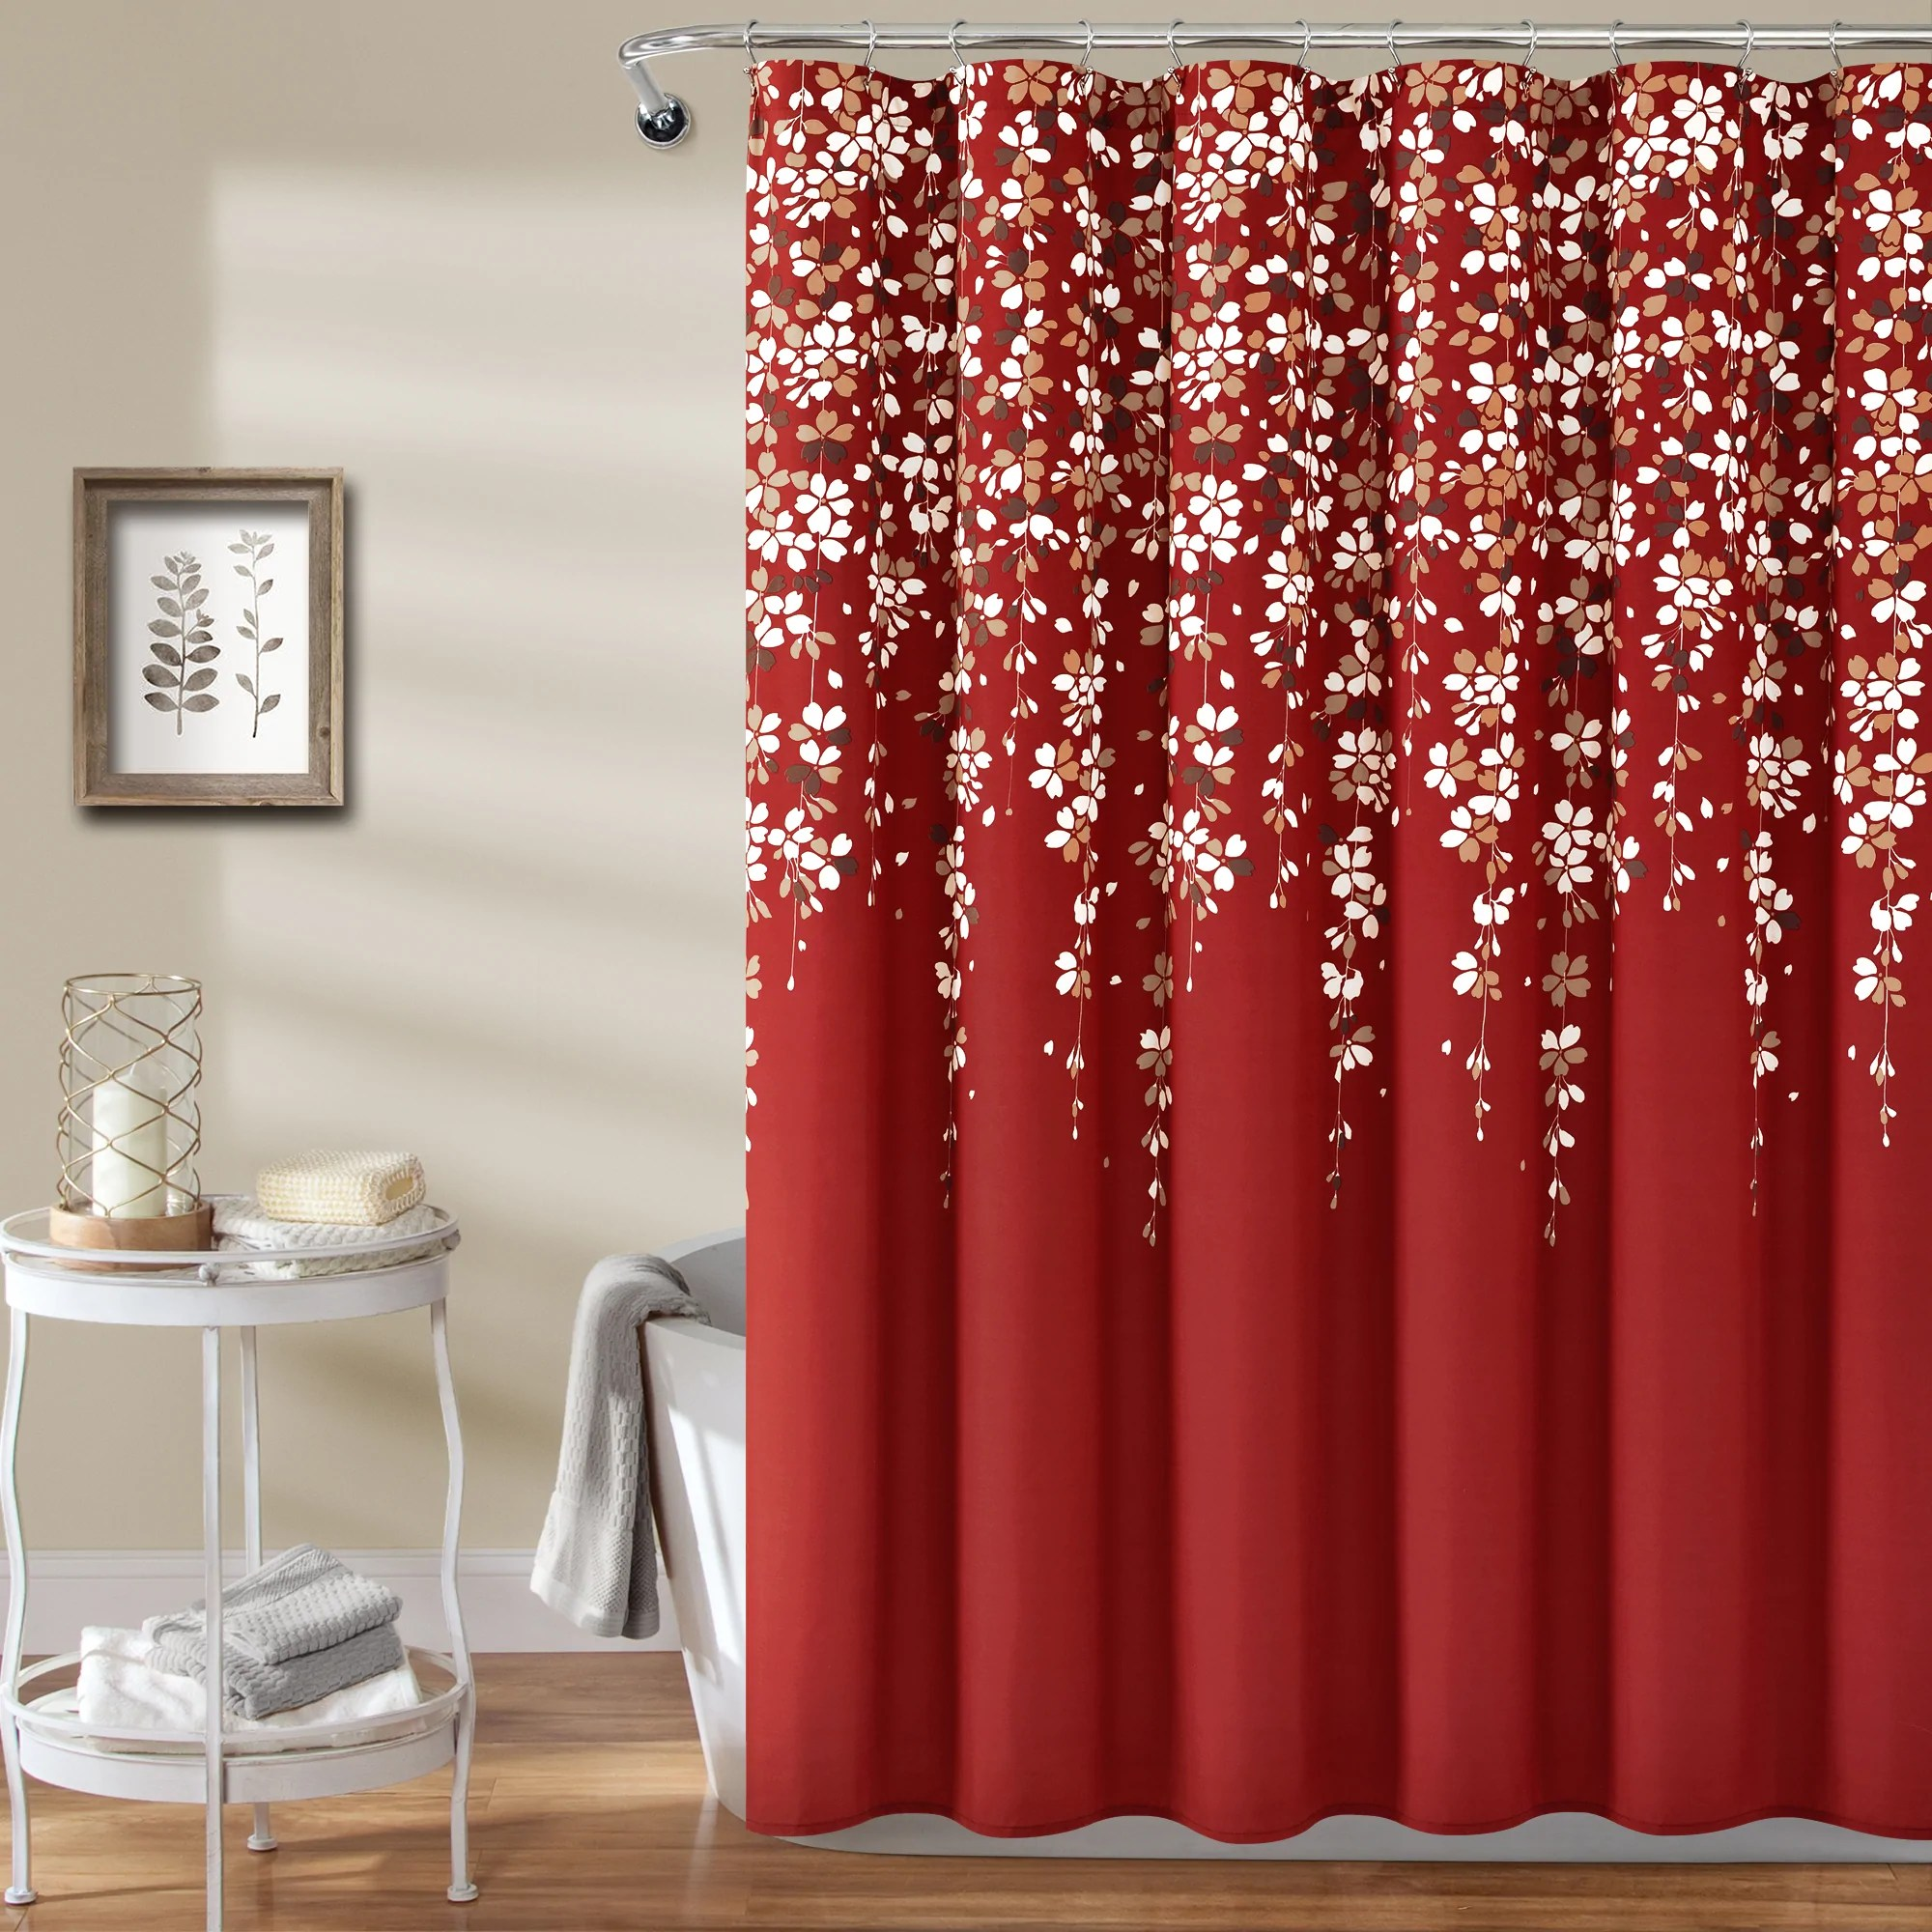 weeping flower shower curtain 72 x 72 red